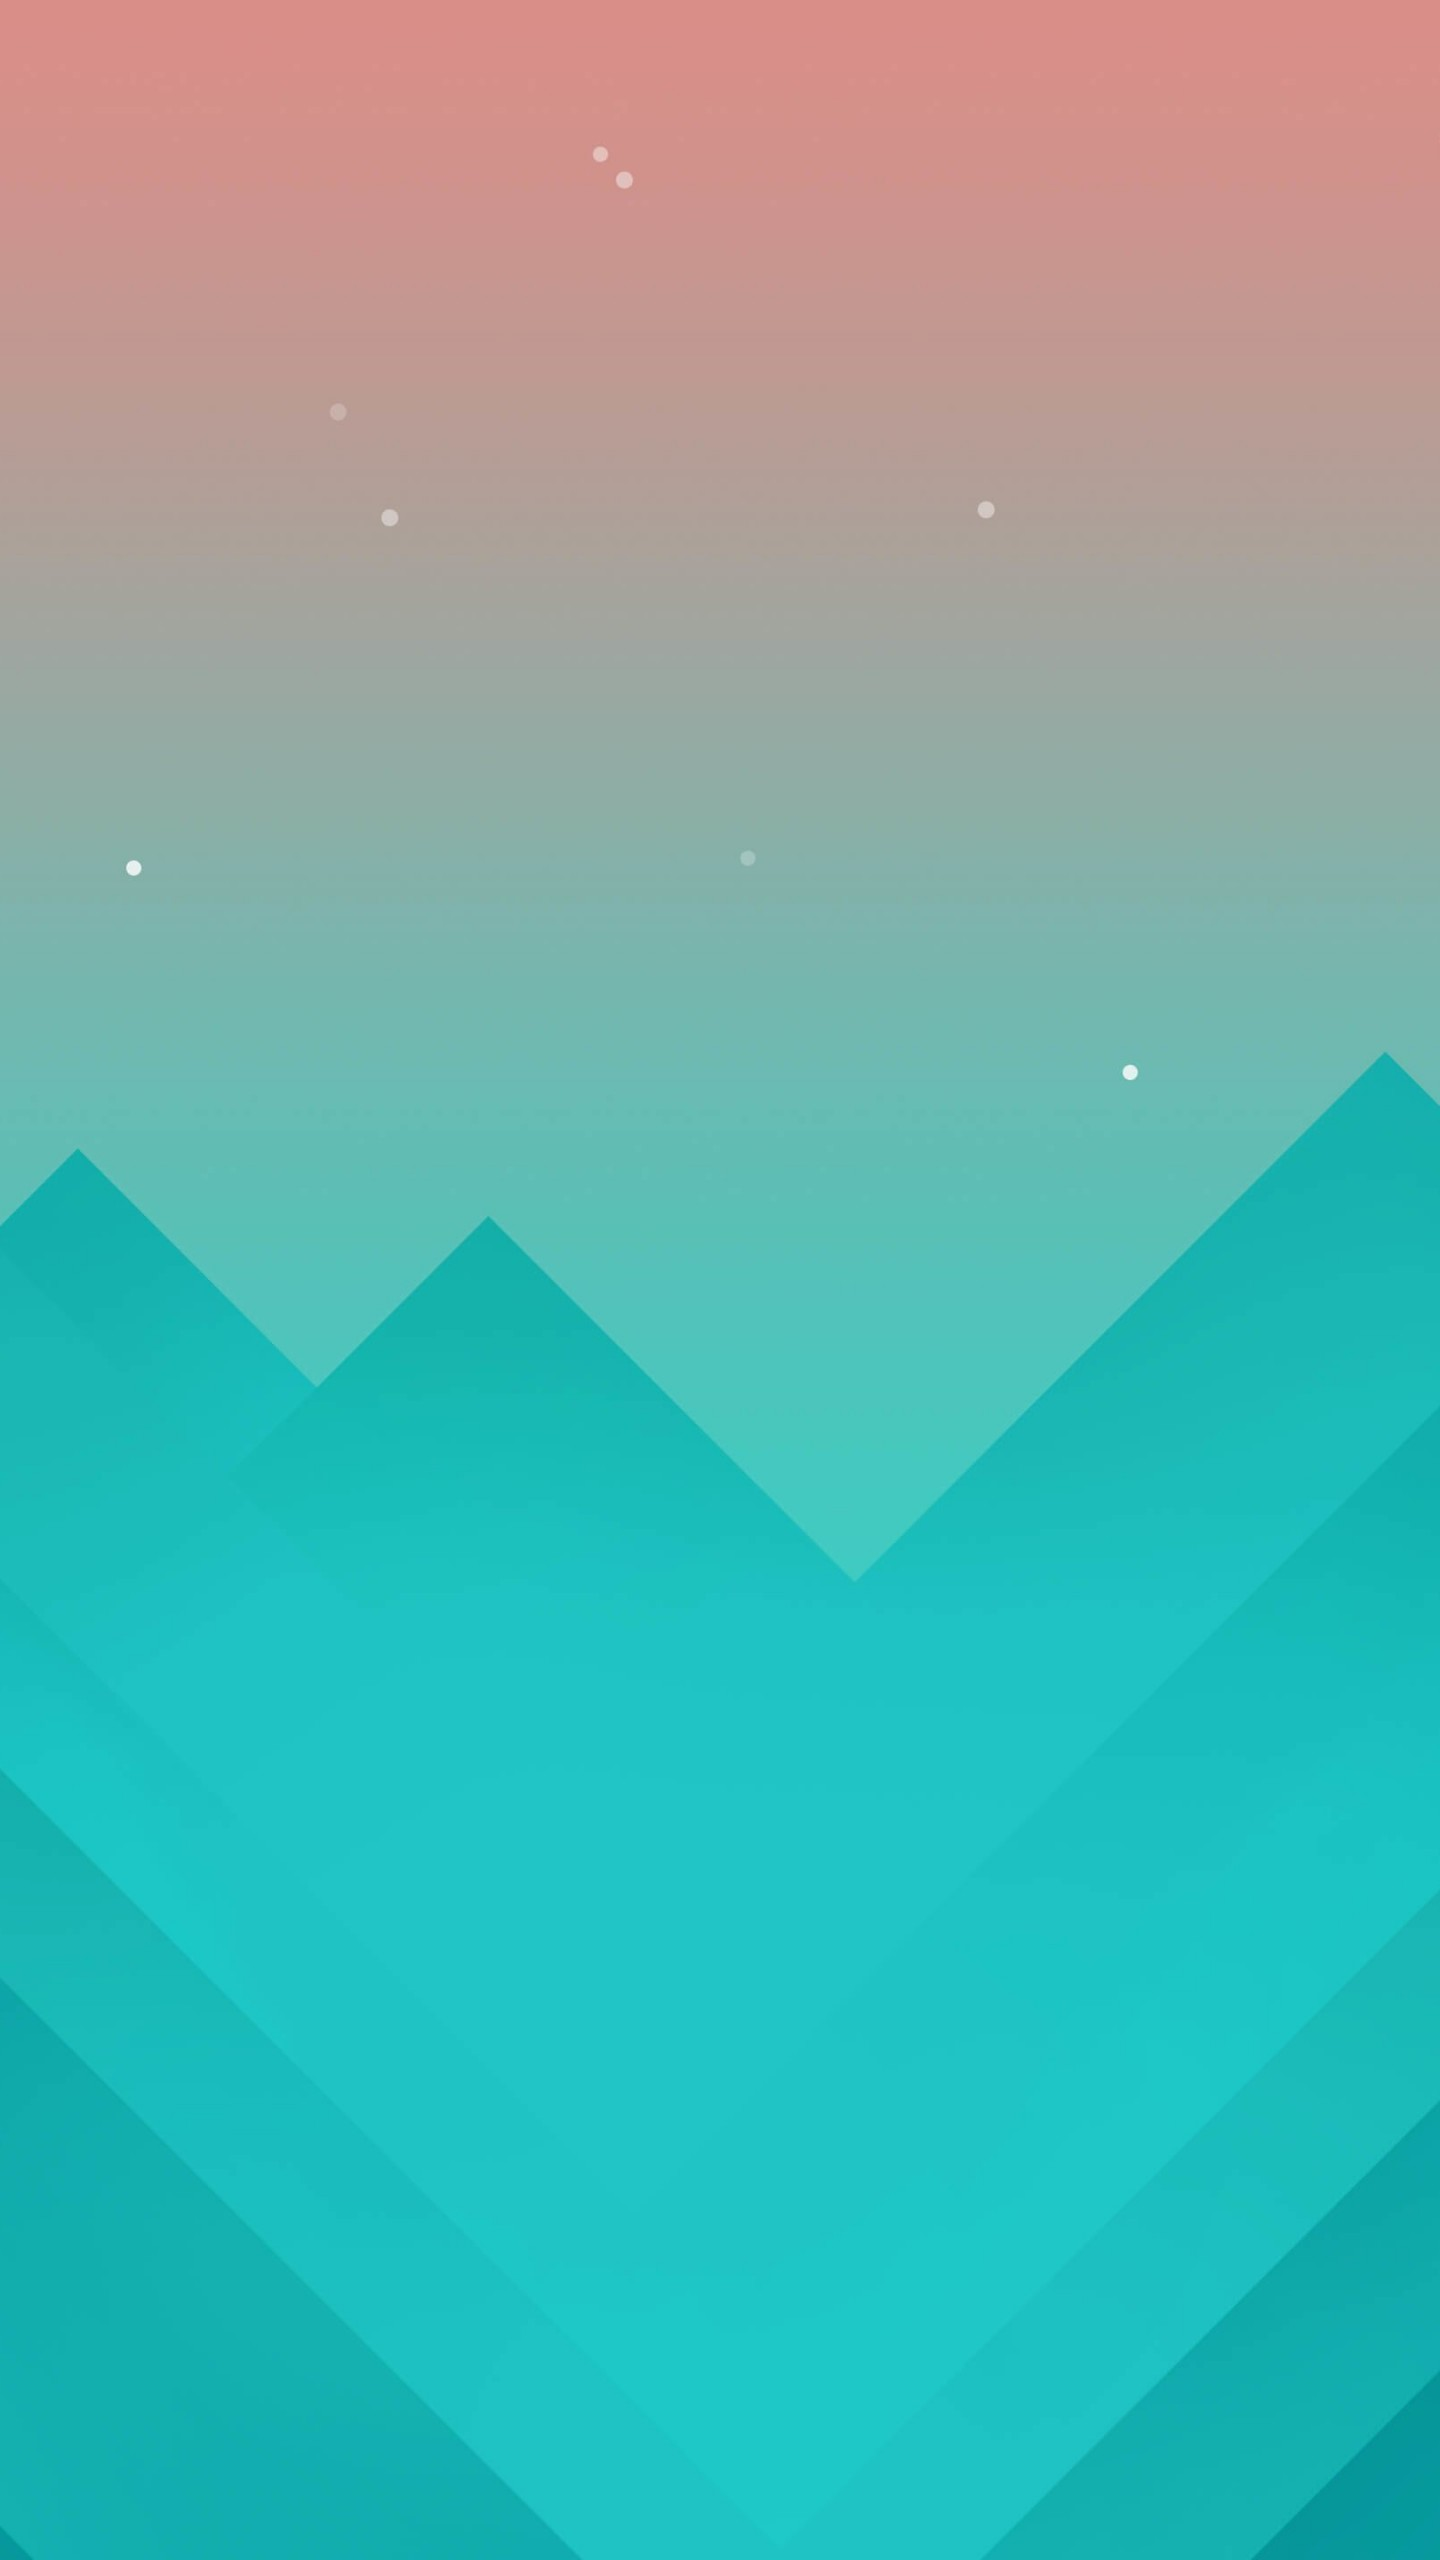 Monument Valley Wallpaper for LG G3